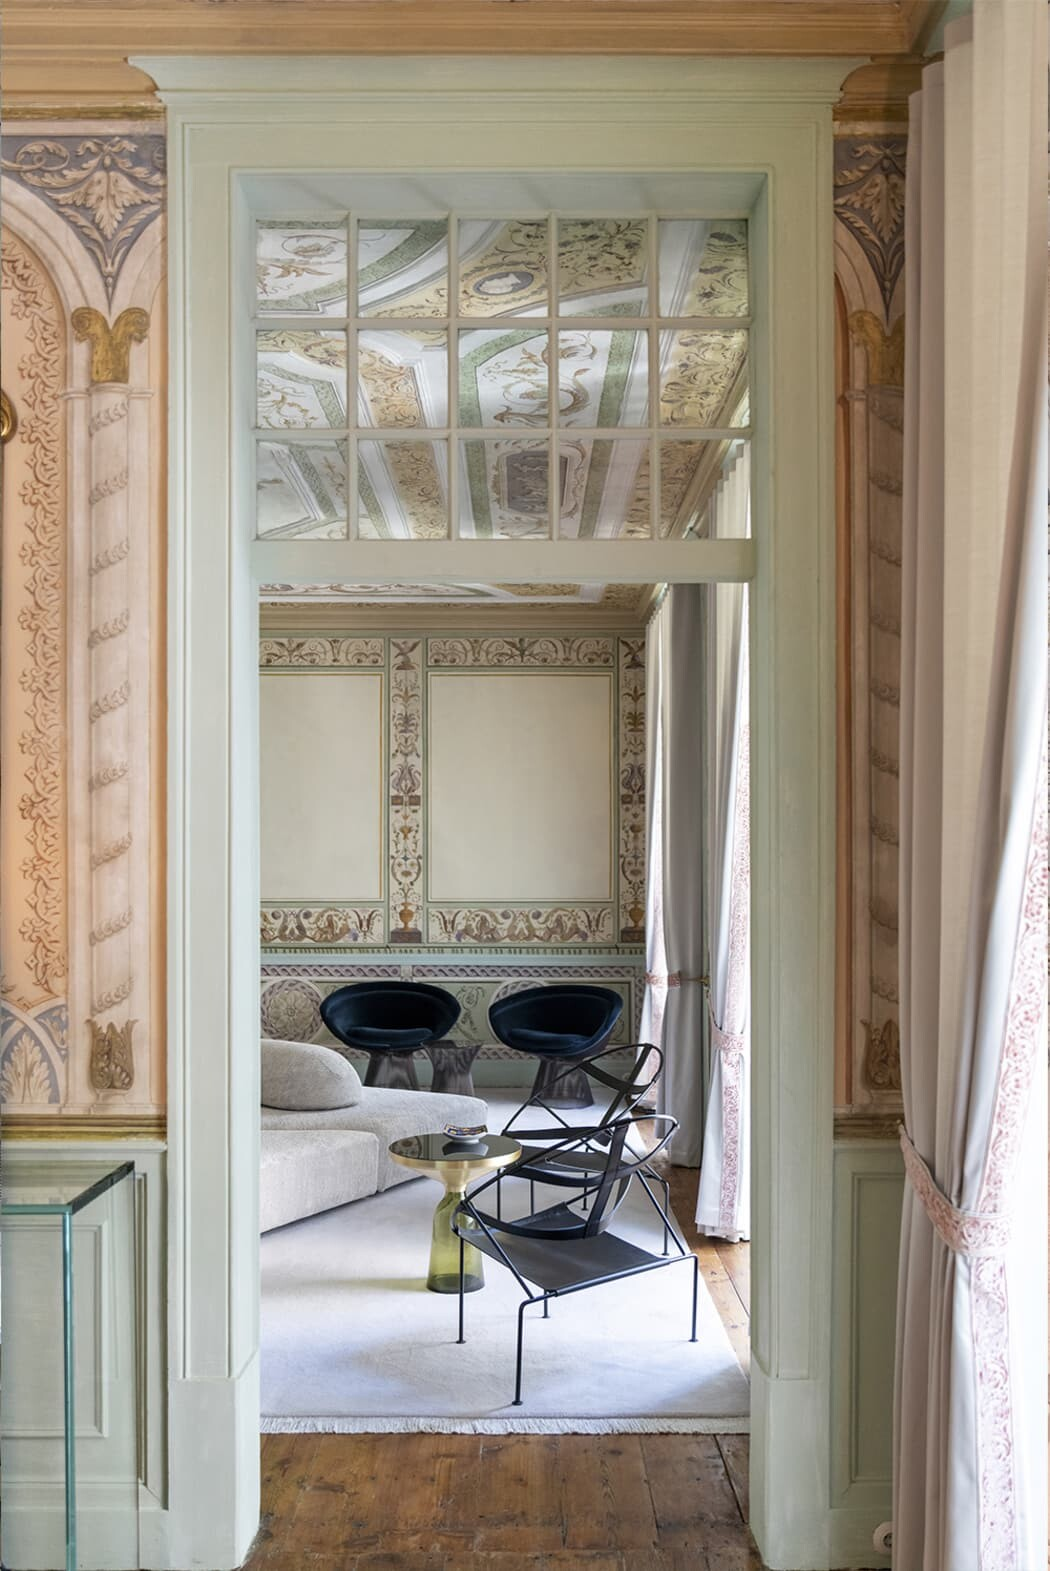 CR Apartment, A Renovation Meant to Respect the Patrimony of the 17th Century